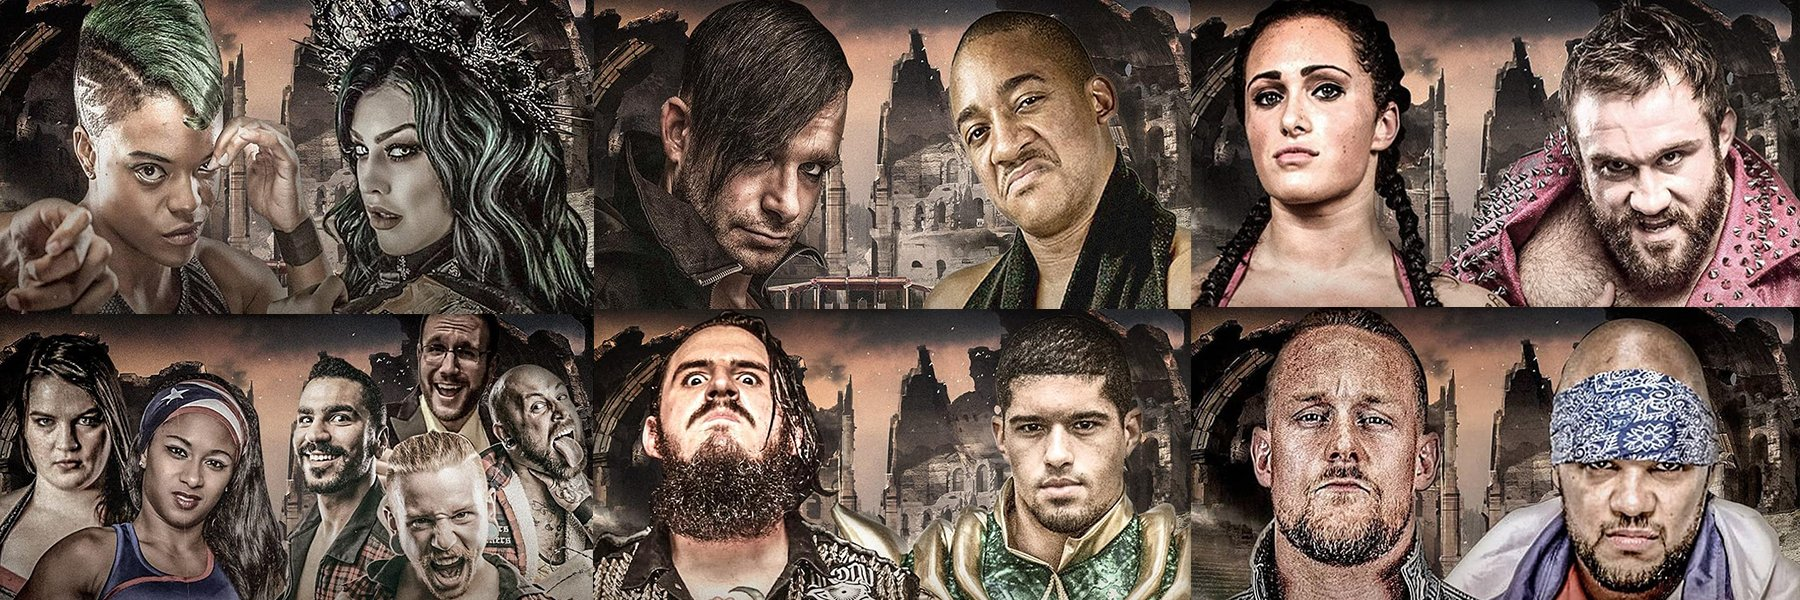 Battle Club Pro: Trial By Combat - Maria Manic, Brody King, Jimmy Havok